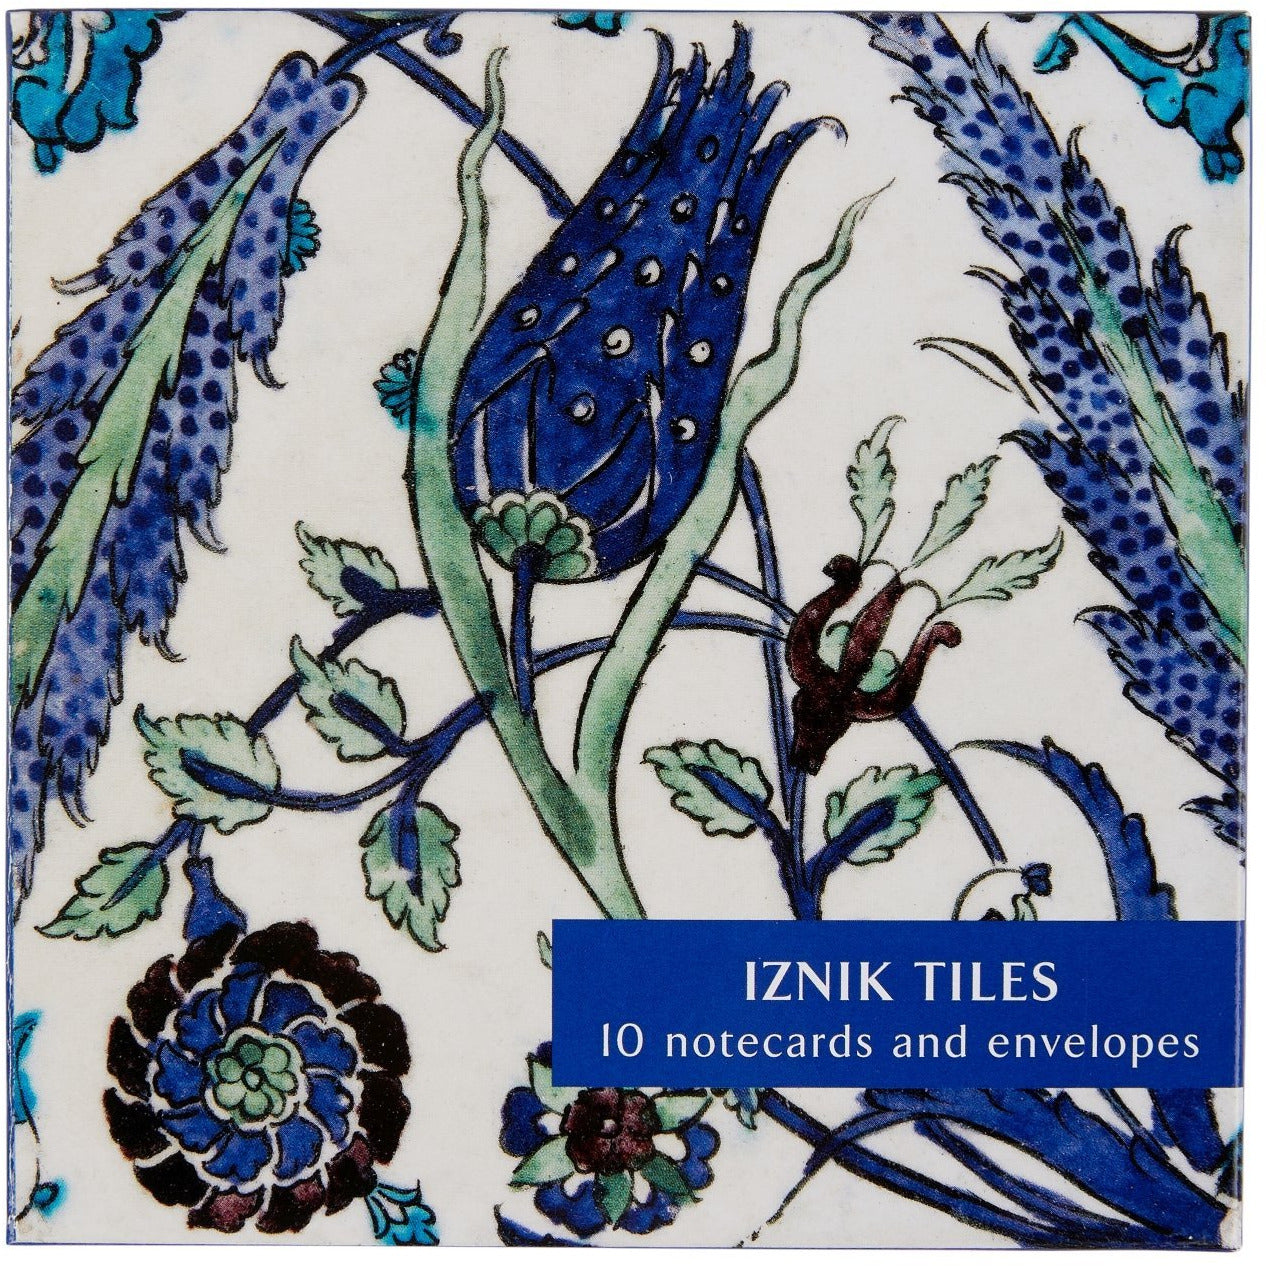 Featured image for the project: Iznik Tiles - Notecard pack